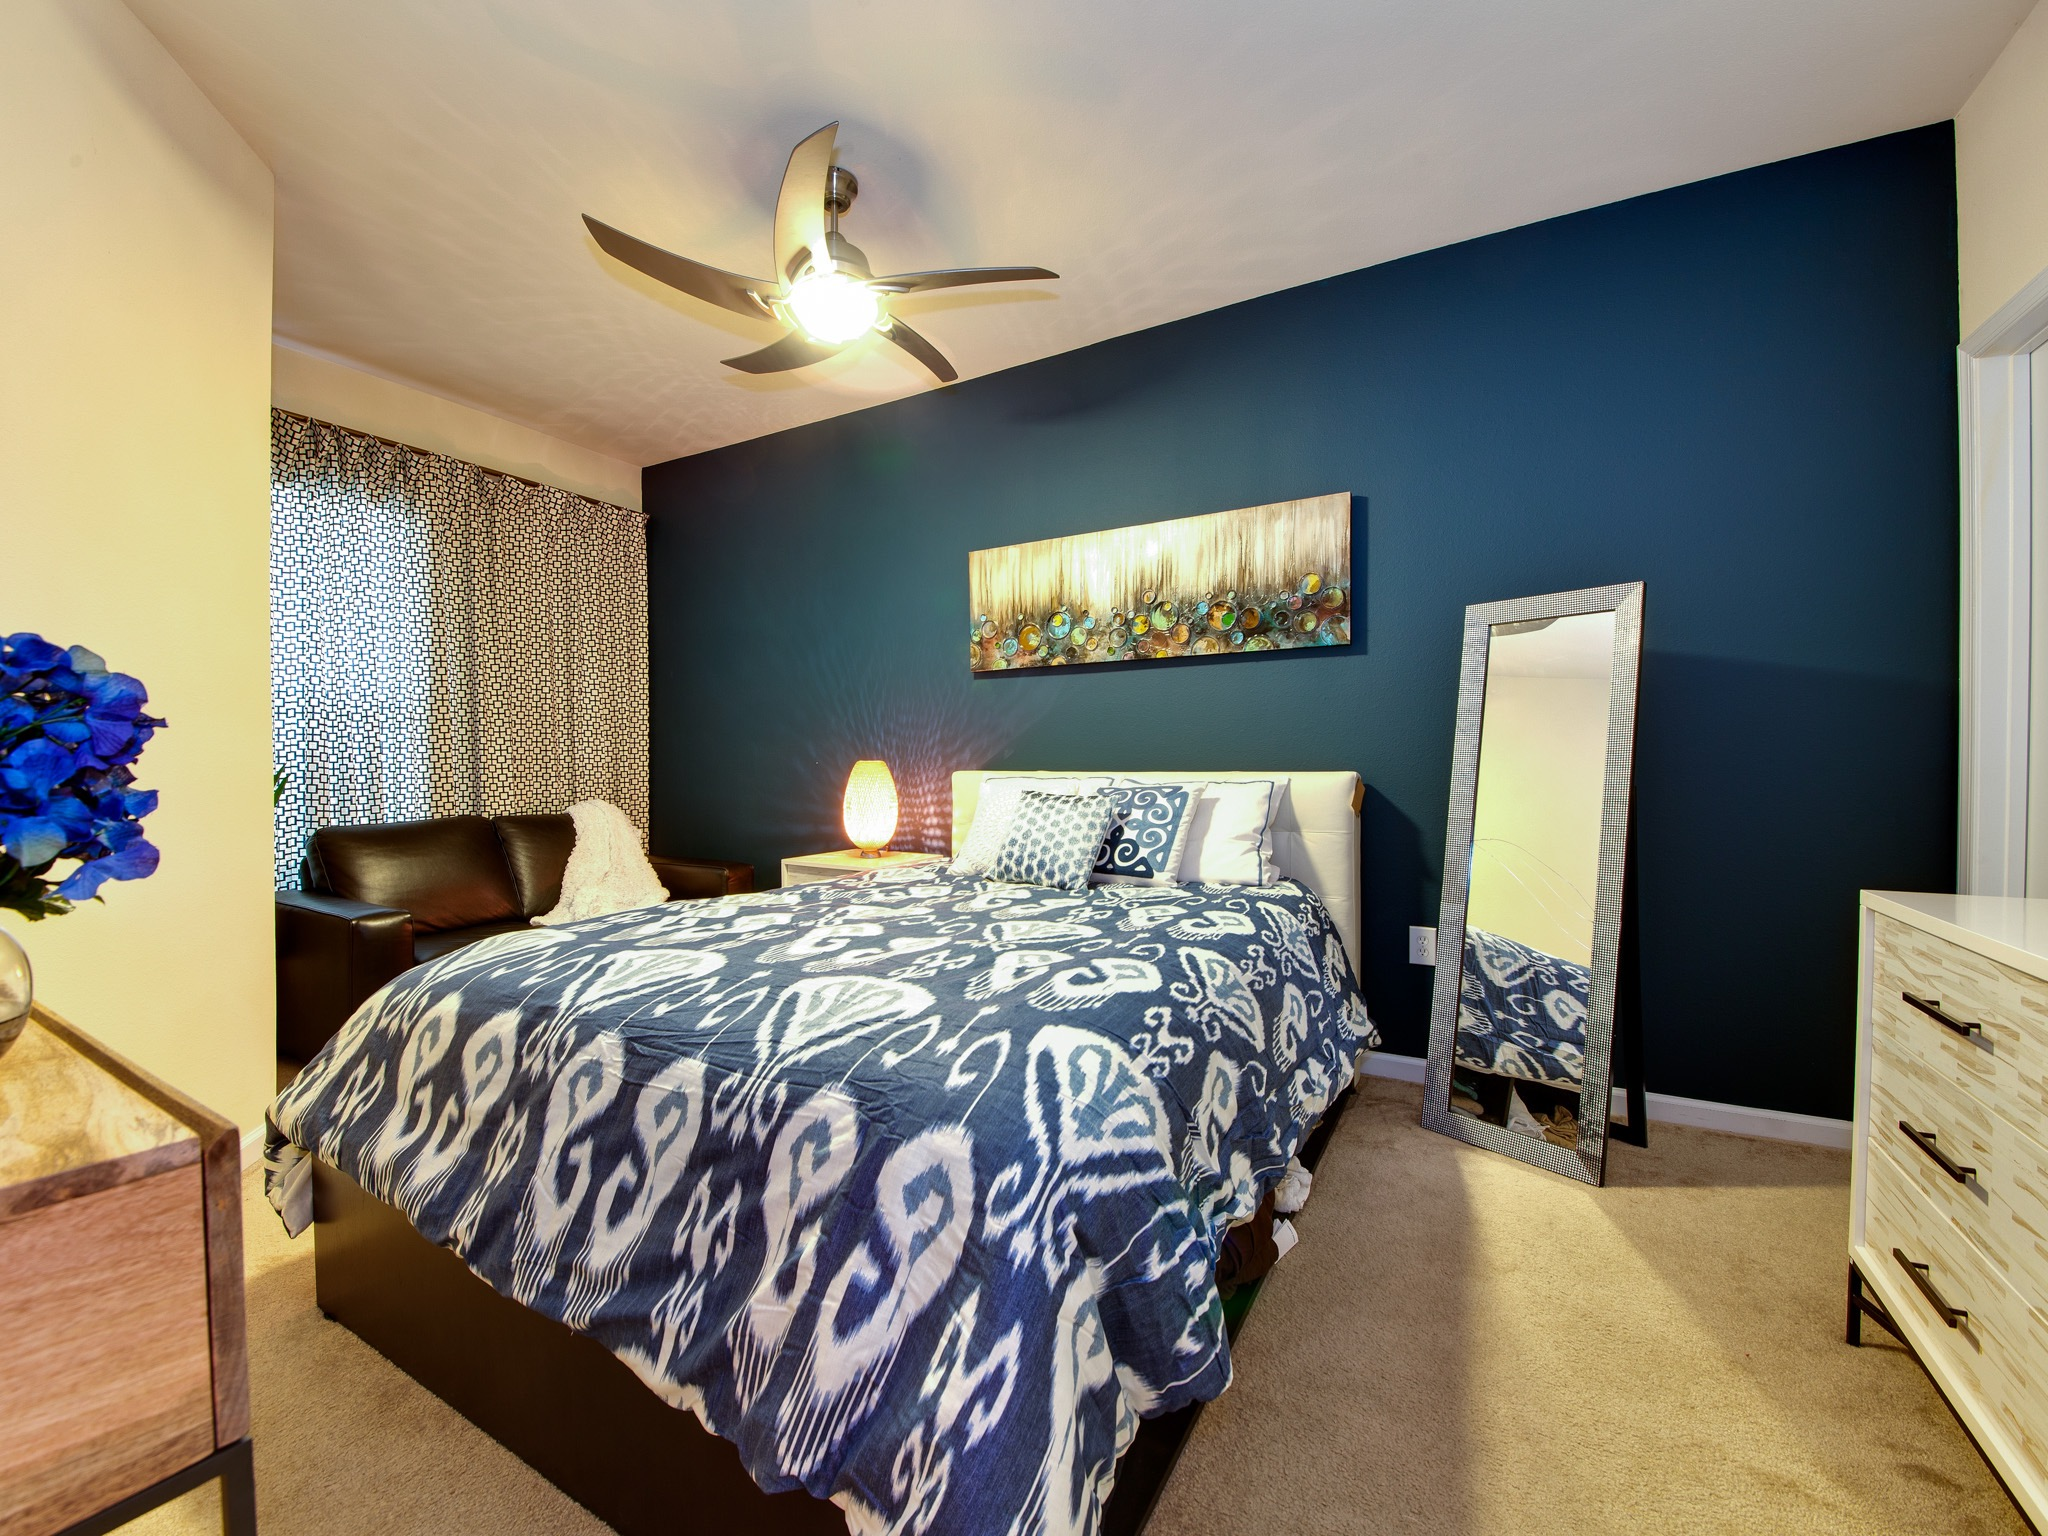 Modern Bedroom With Blue Accent Wall Mix With Chocolate Brown Furnishings (Image 12 of 22)